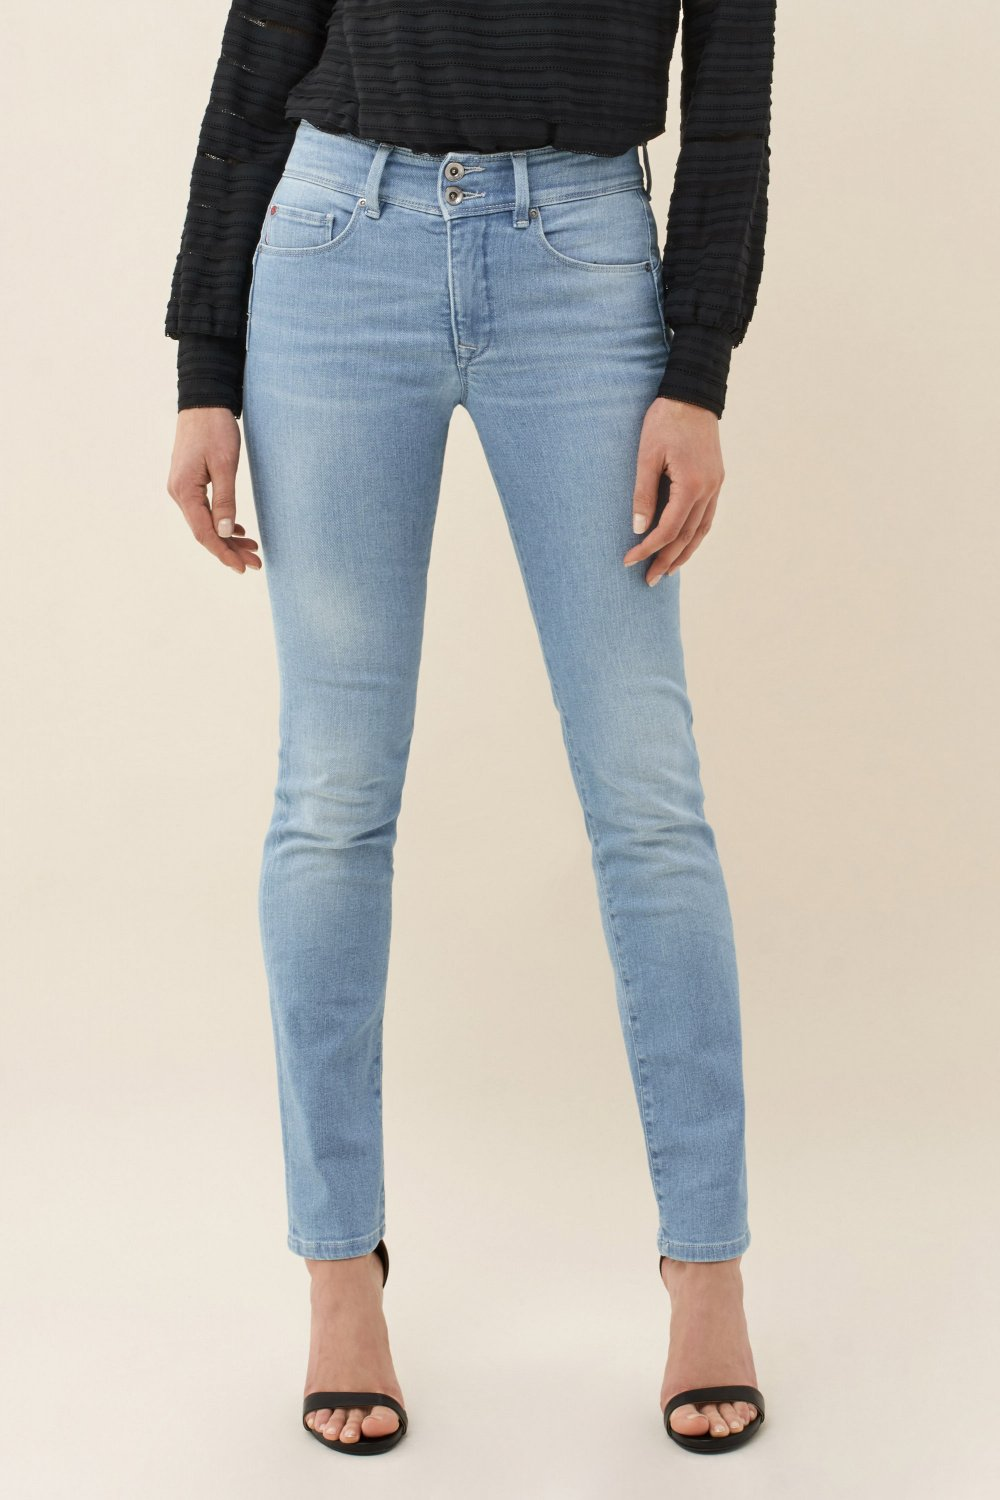 Push In Secret slim jeans - Salsa